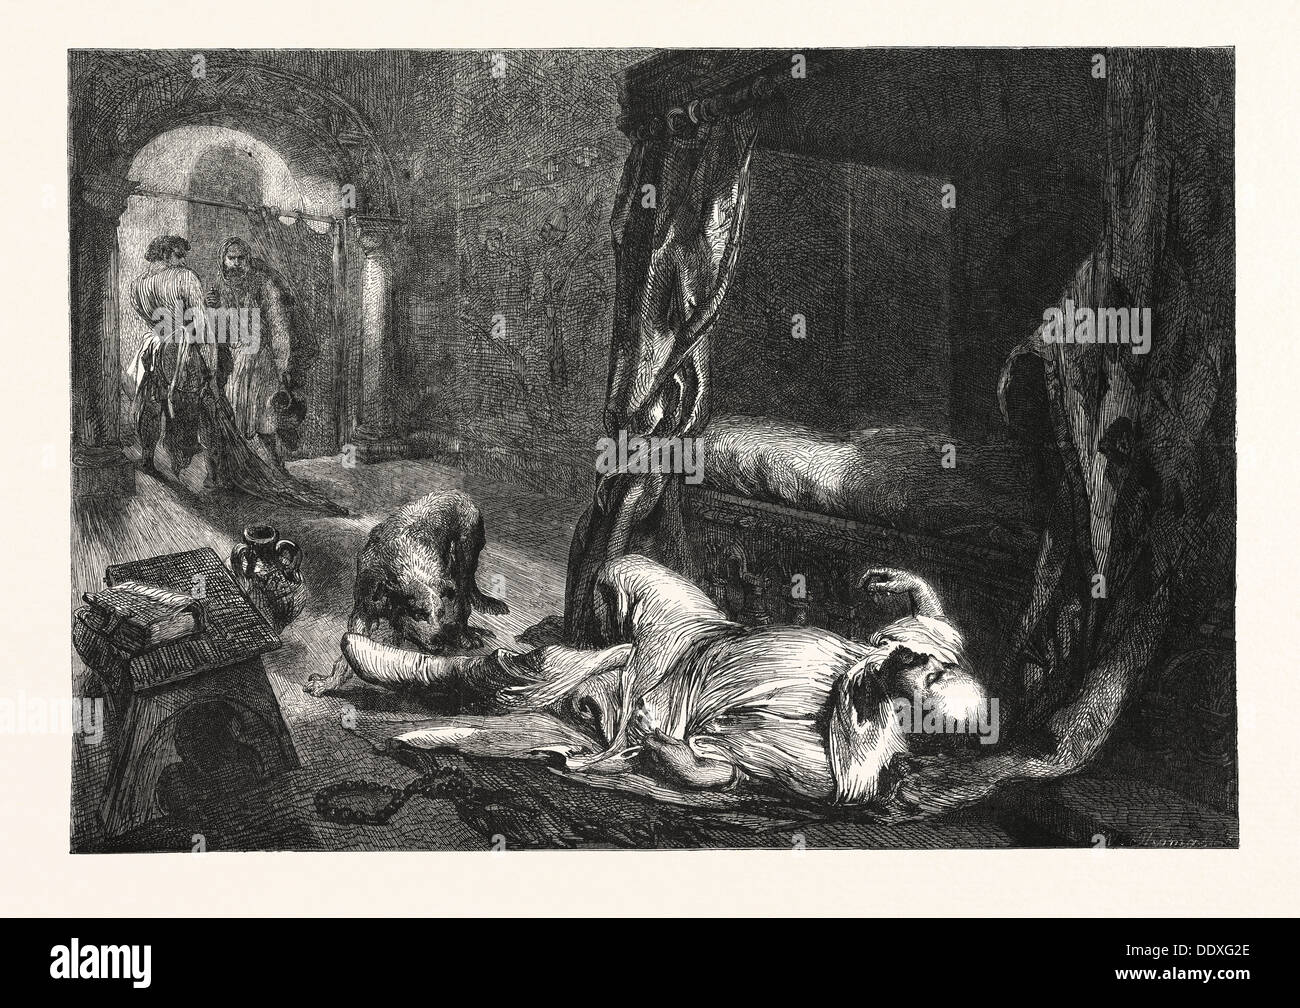 THE DEATH OF WILLIAM THE CONQUEROR, DRAWN BY J. GILBERT, 1861 - Stock Image